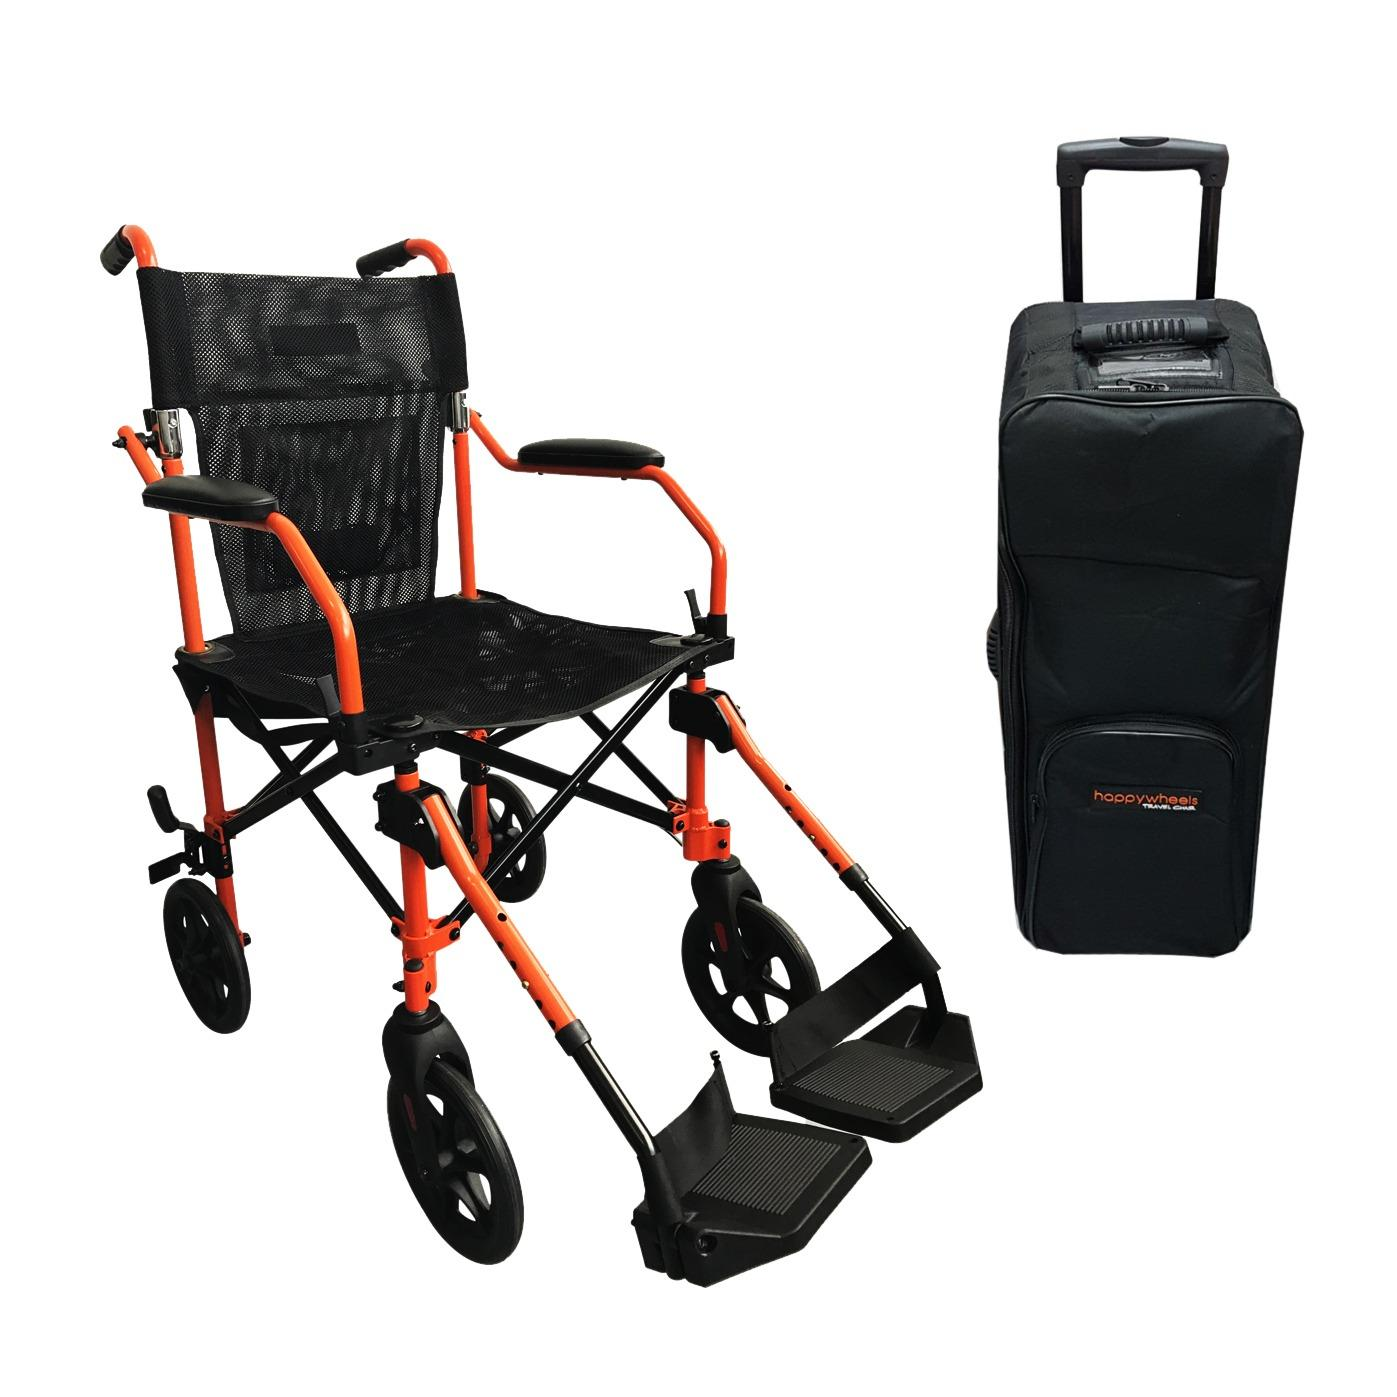 How Do I Get Happywheels Travel Chair Lightweight Portable Foldable Transport Wheelchair With Trolley Bag